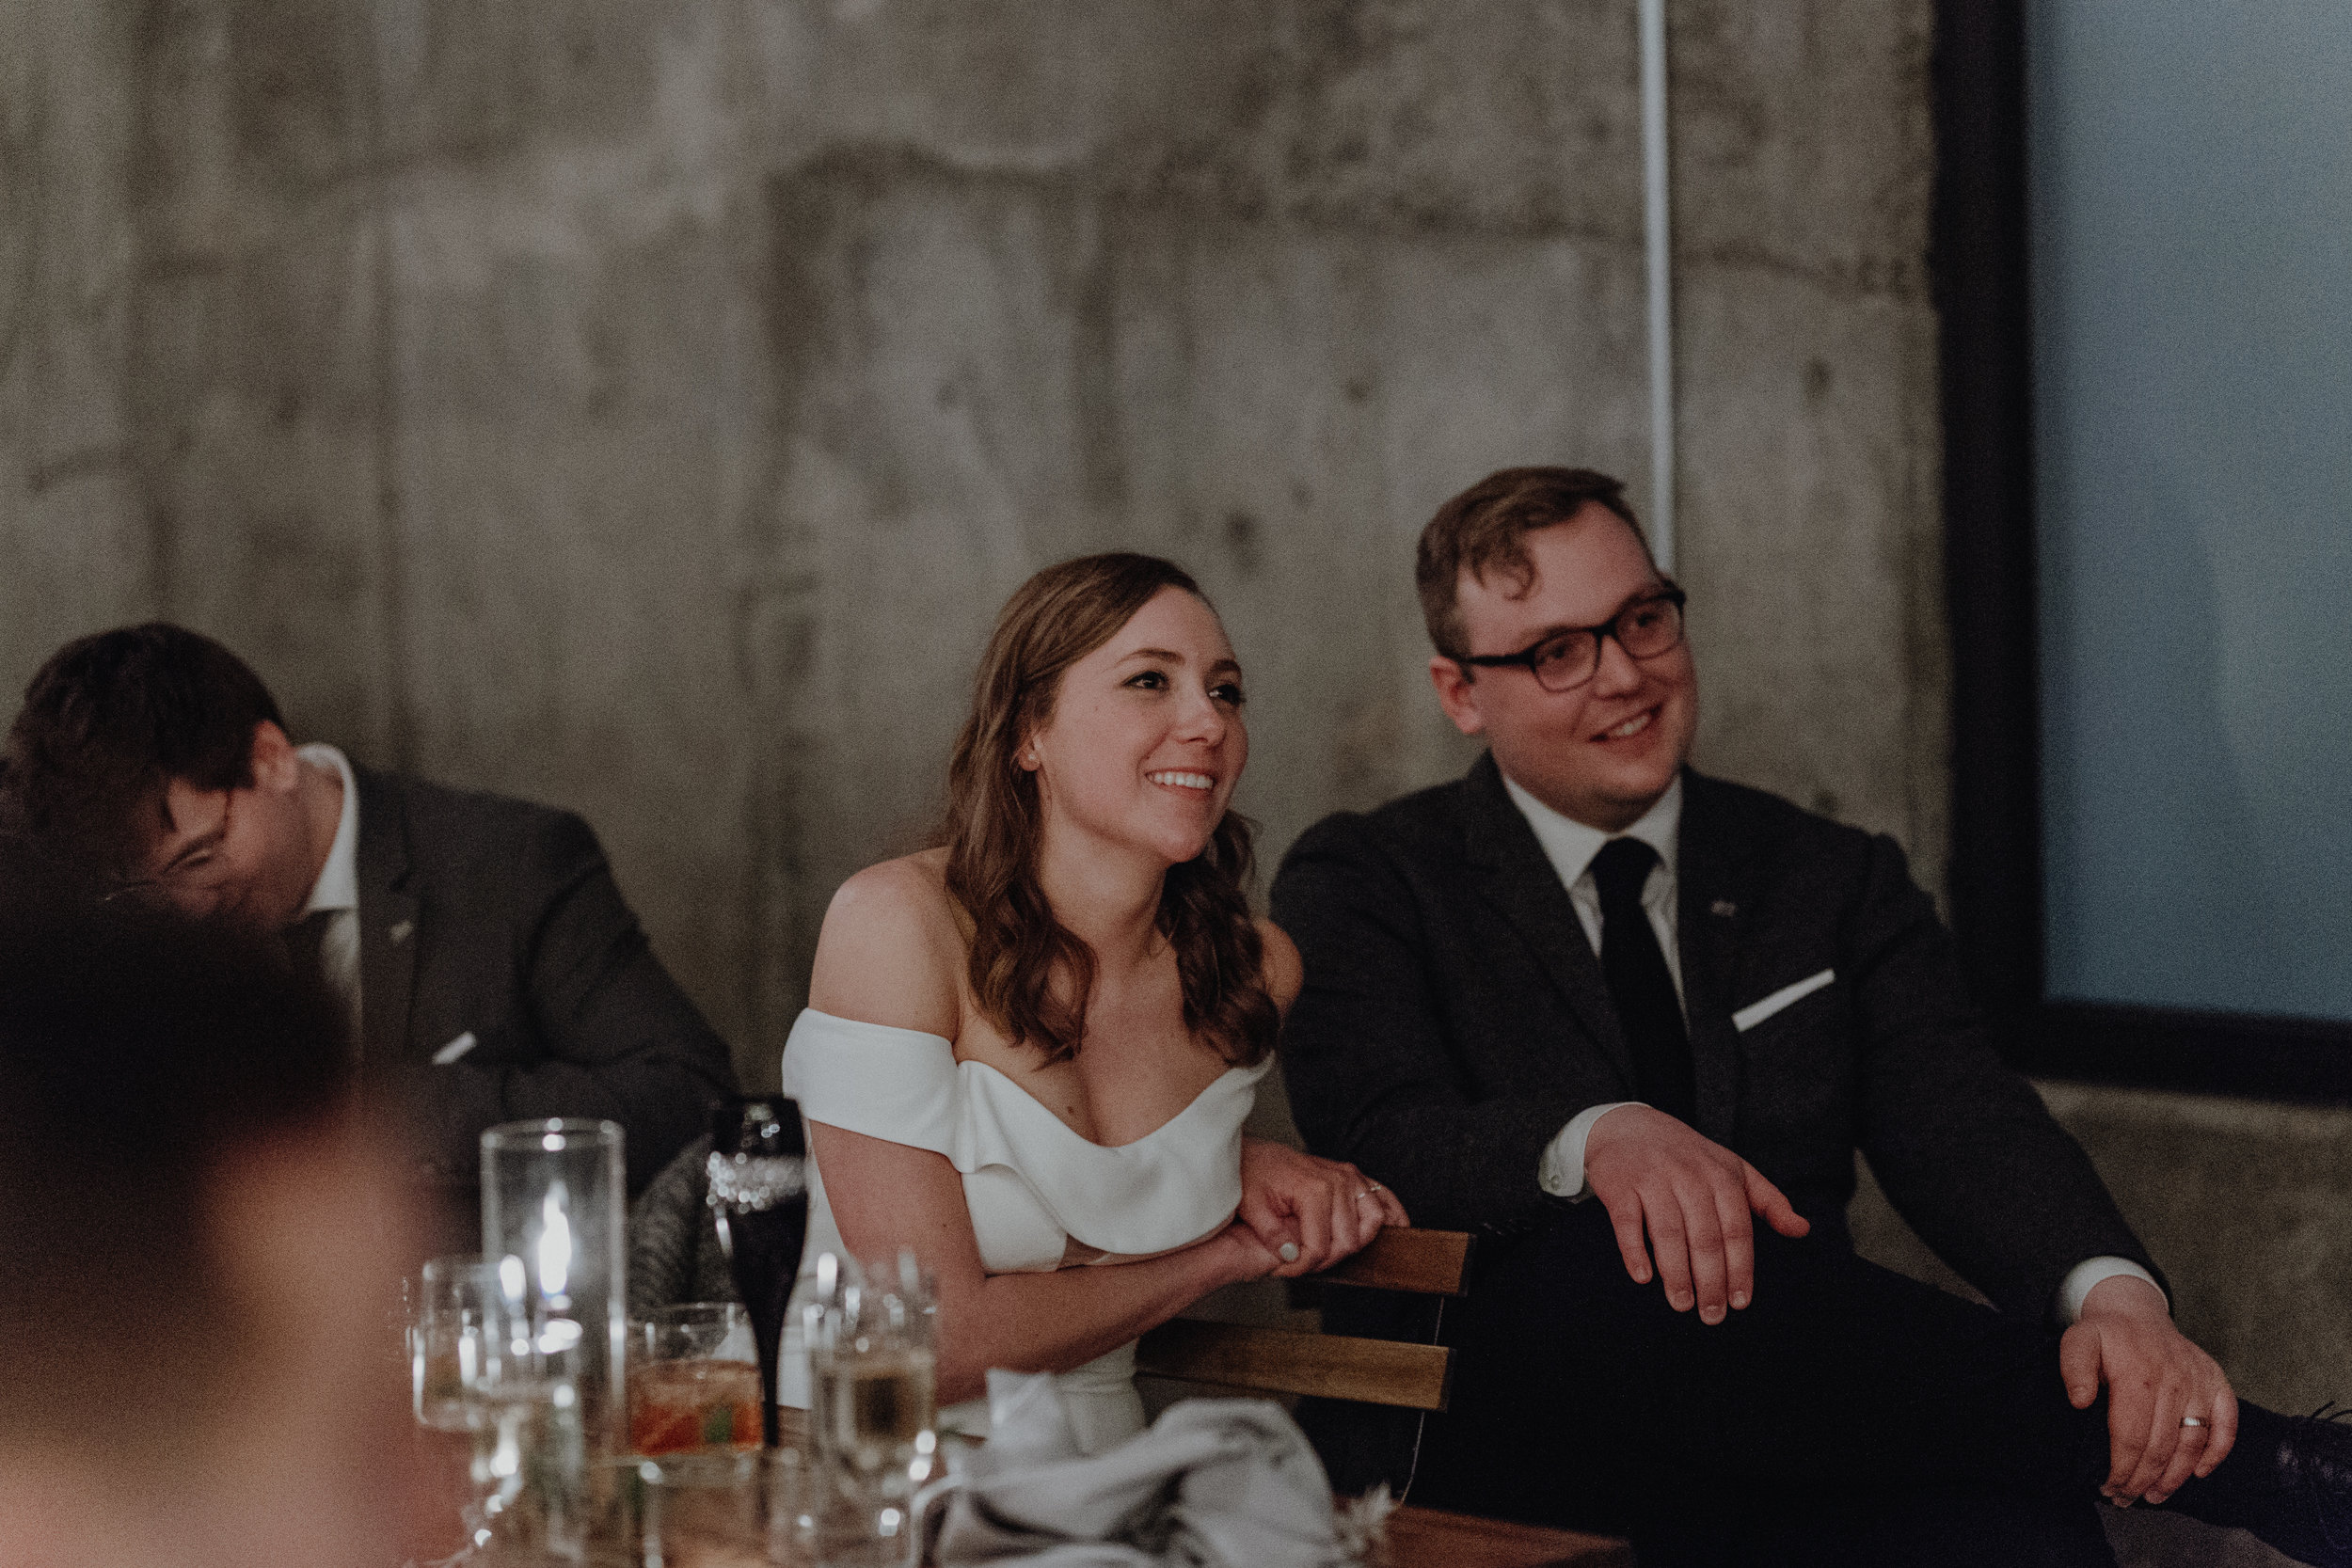 fremont_foundry_seattle_wedding_oliviastrohm___-3.jpg